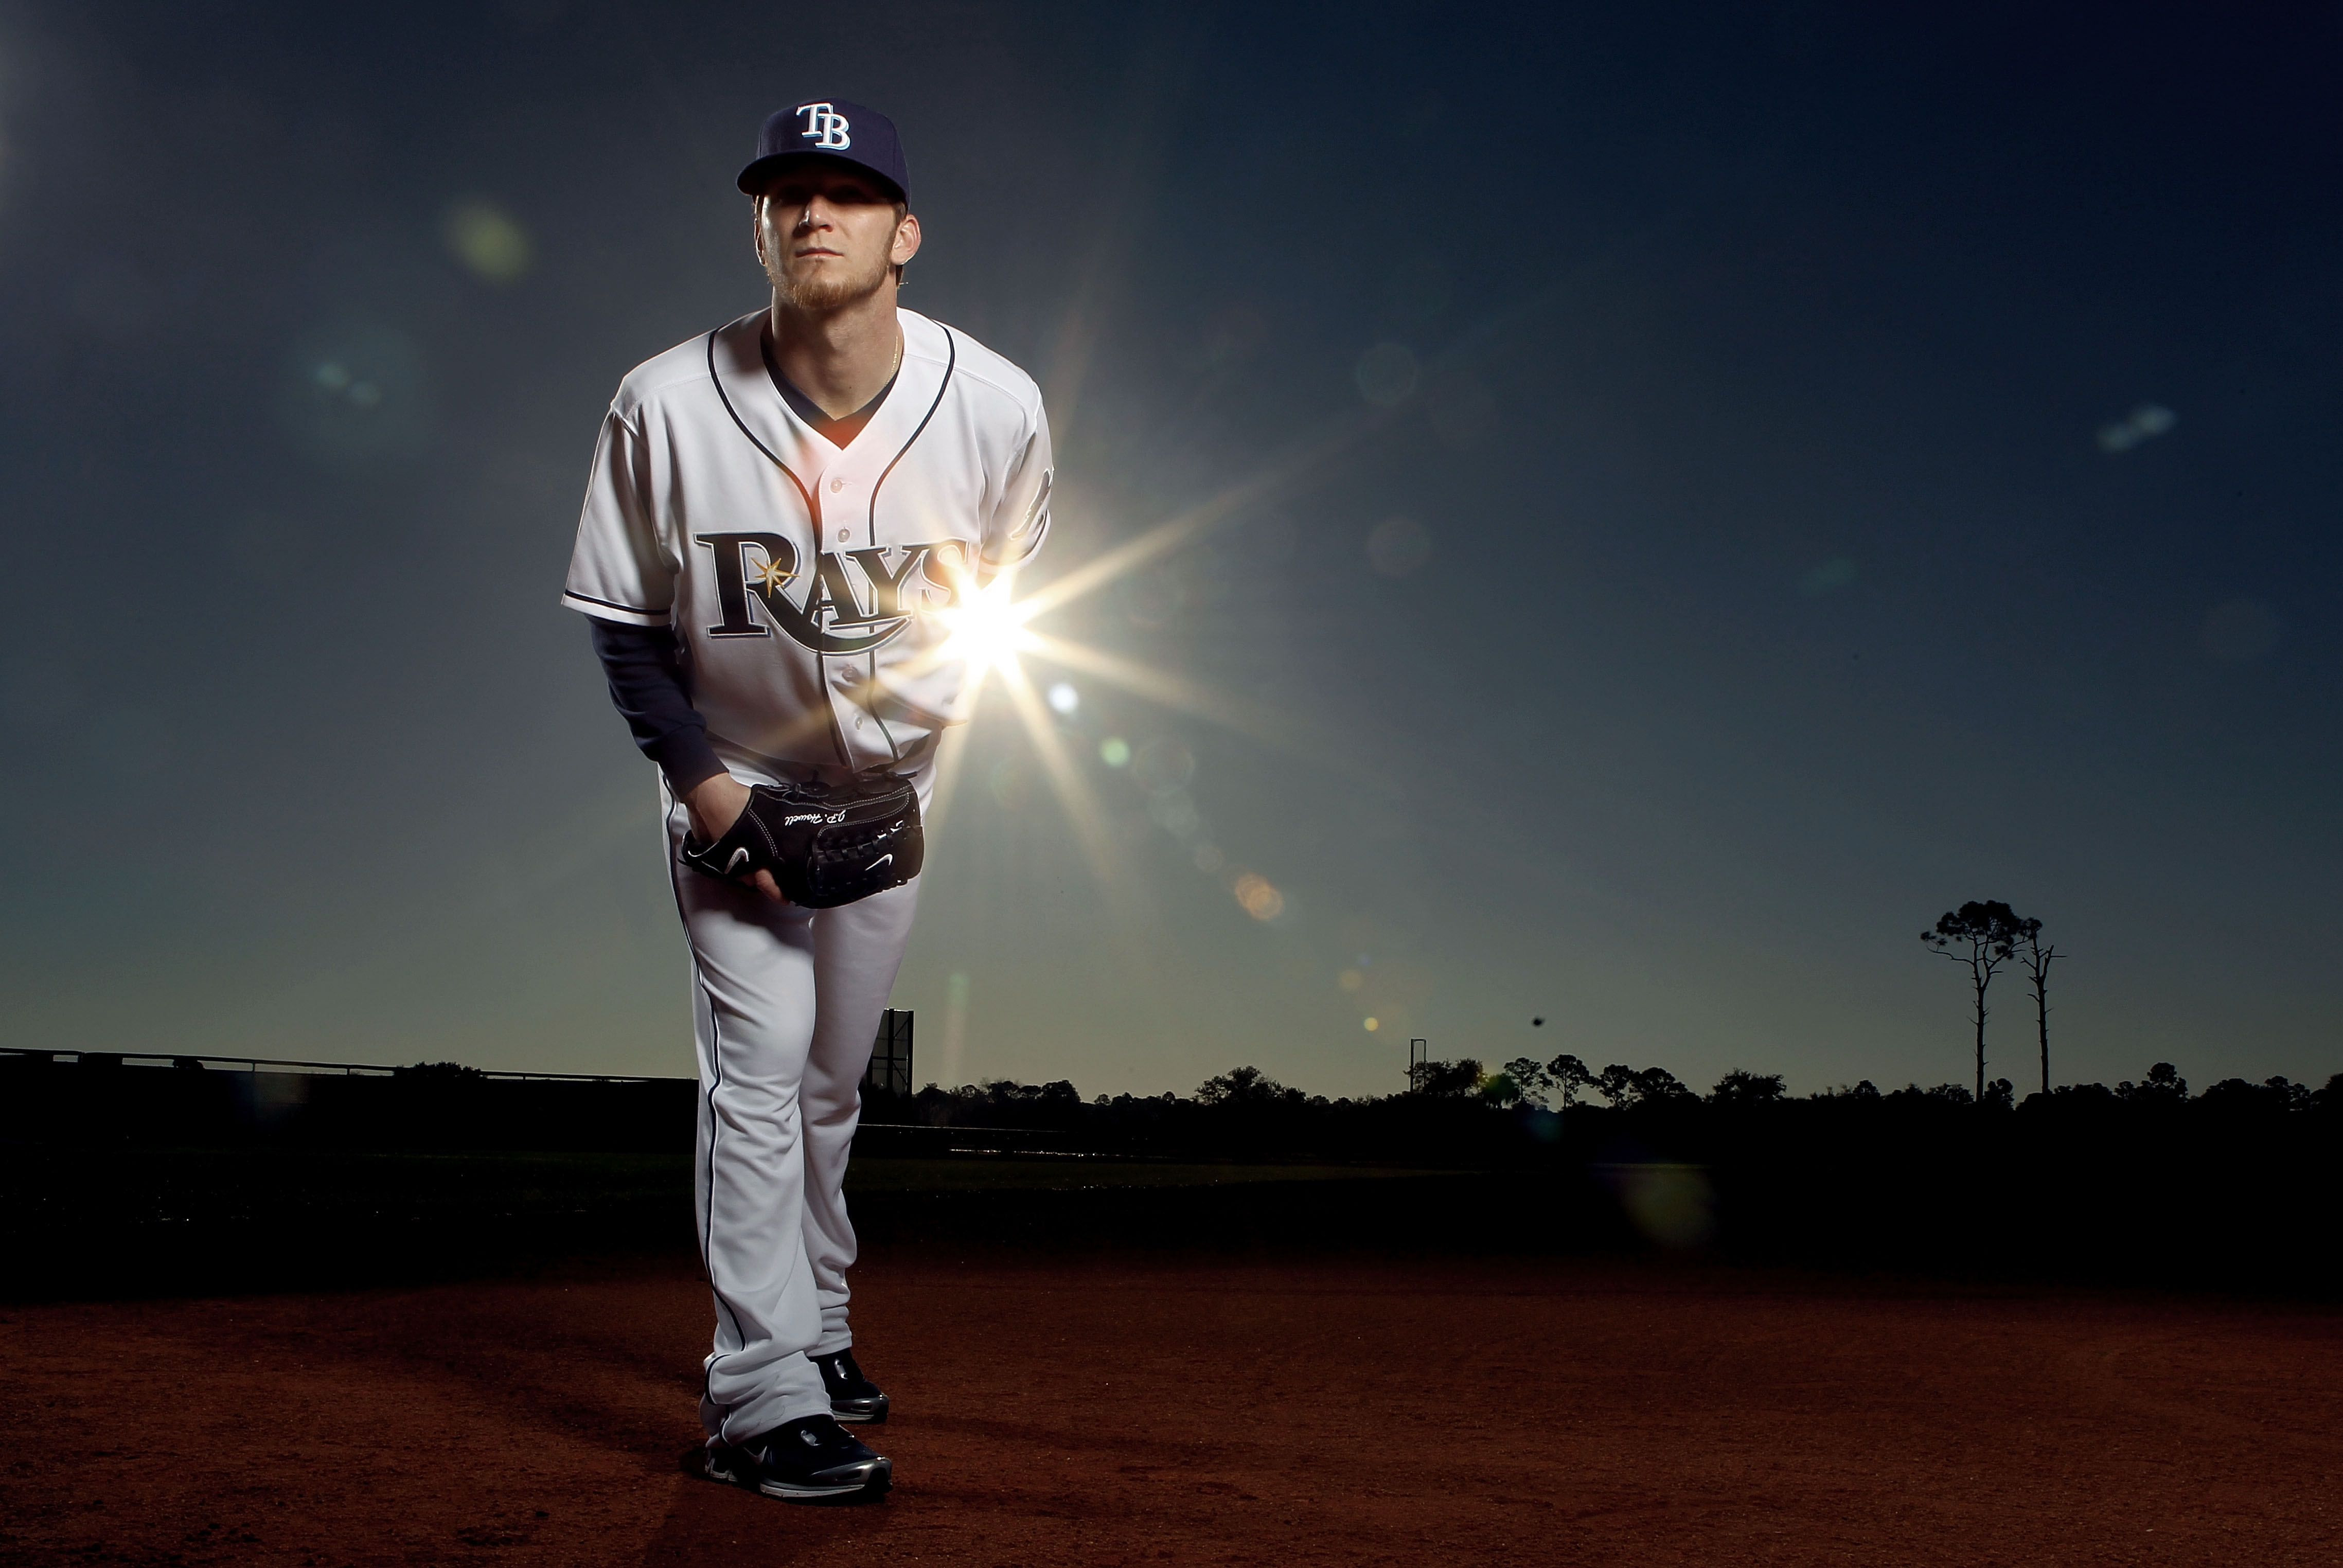 PORT CHARLOTTE, FL - FEBRUARY 26:  (EDITOR'S NOTE: IMAGE HAS BEEN DIGITALLY DESATURATED) J.P. Howell #39 of the Tampa Bay Rays poses for a photo during Spring Training Media Photo Day at Charlotte County Sports Park on February 26, 2010 in Port Charlotte,